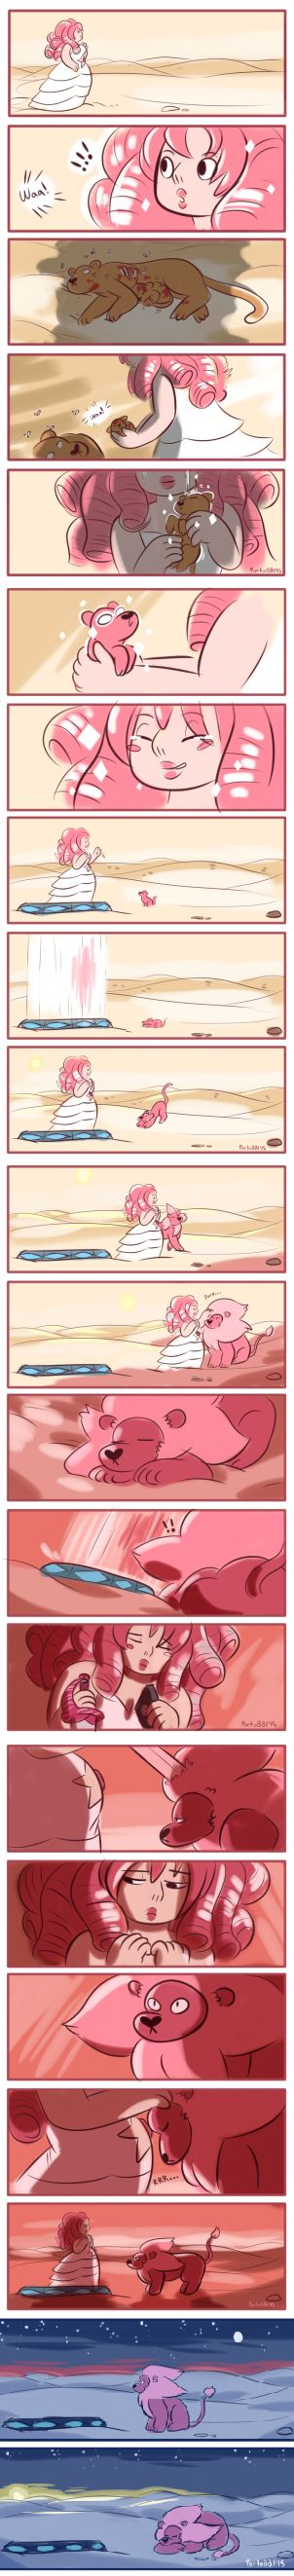 Lion: Origins ||| Rose Quartz and Lion ||| SAD!!! TT-TT<<<WHYYYYYYYY